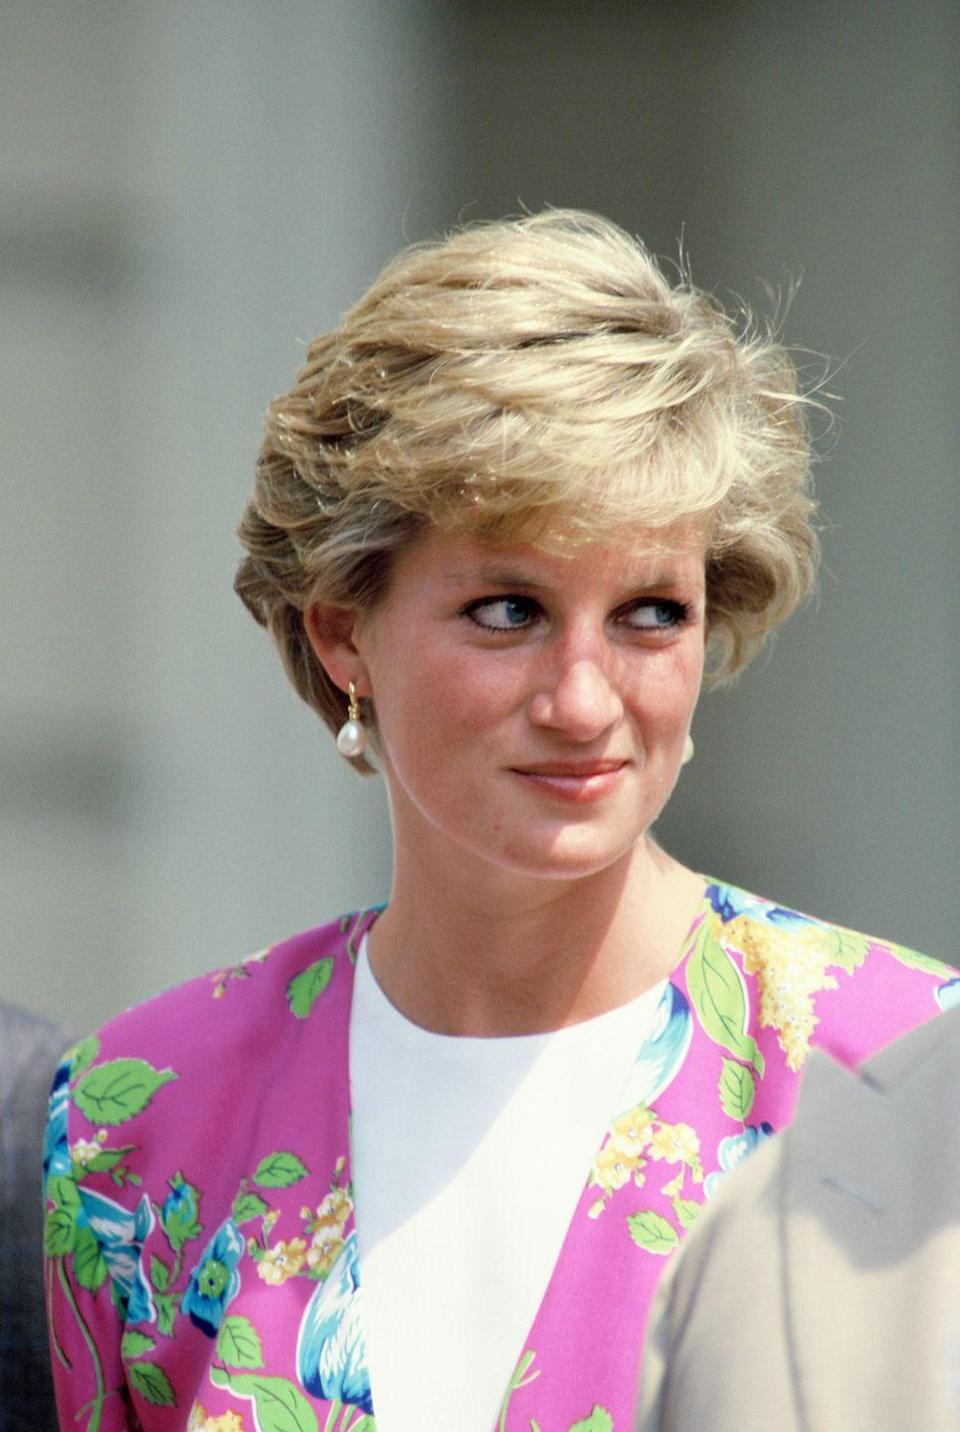 "<p>Ever the trendsetter, Princess Diana influenced women of the world to go short with her famous crop created by <a href=""http://www.harpersbazaar.com/beauty/hair/news/a13447/princess-diana-haircut-sam-mcknight/"" rel=""nofollow noopener"" target=""_blank"" data-ylk=""slk:hairstylist Sam McKnight"" class=""link rapid-noclick-resp"">hairstylist Sam McKnight</a>.</p><p><strong>RECOMMENDED:</strong> <a href=""https://www.goodhousekeeping.com/beauty/hair/news/g4020/princess-diana-hair/"" rel=""nofollow noopener"" target=""_blank"" data-ylk=""slk:Princess Diana's Most Memorable Hairstyles"" class=""link rapid-noclick-resp"">Princess Diana's Most Memorable Hairstyles</a></p>"